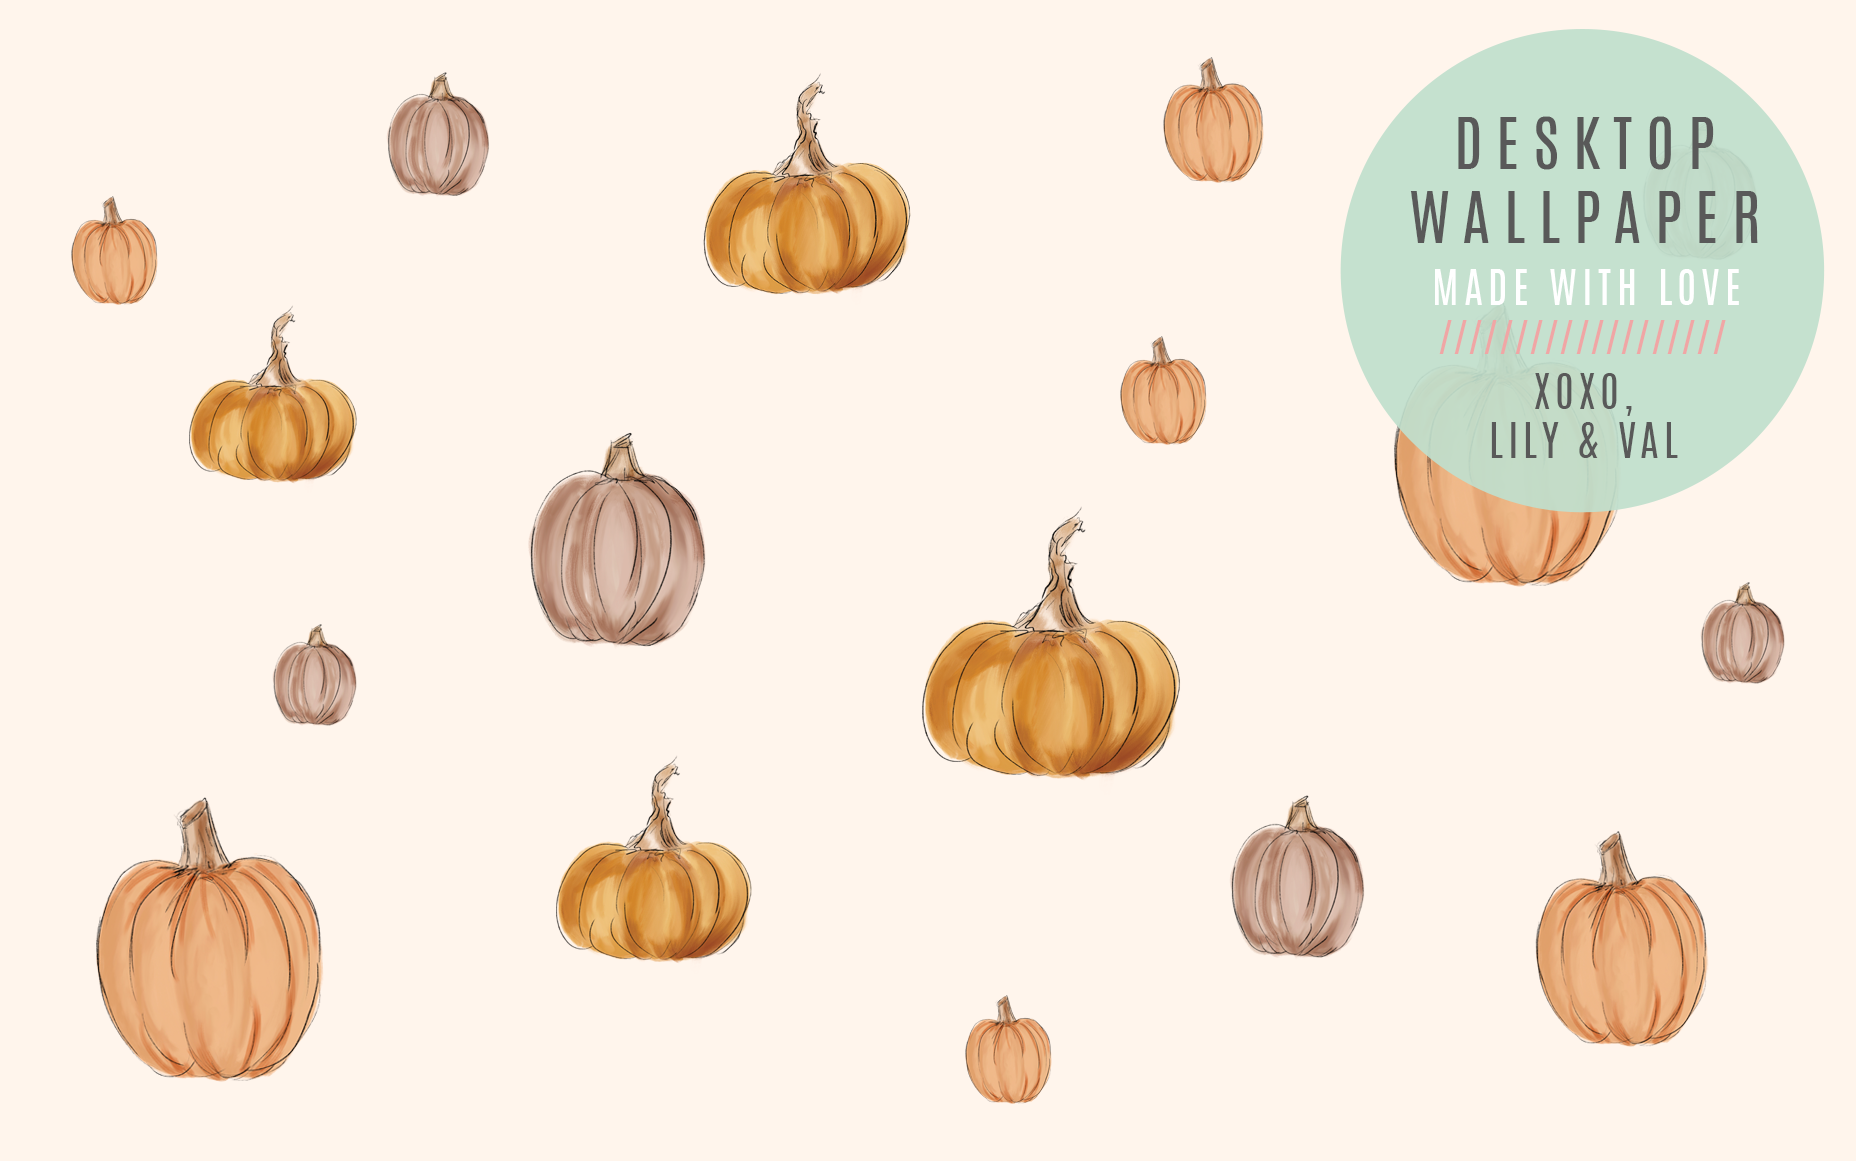 Cute Hand Drawn Pumpkin Desktop Computer Background For Fall Autumn Fall Desktop Backgrounds Cute Desktop Wallpaper Halloween Desktop Wallpaper